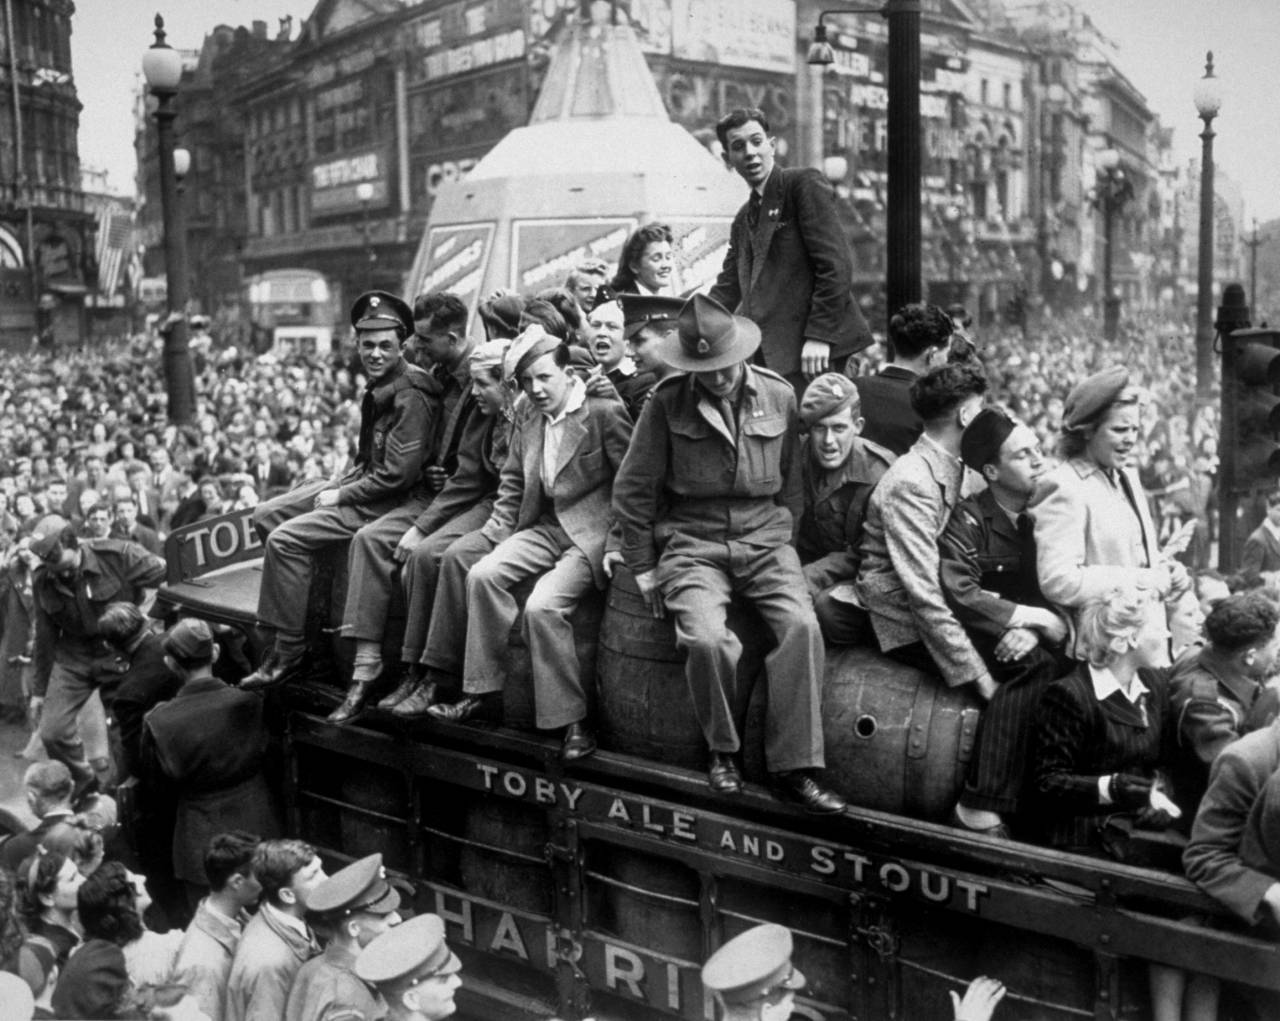 8th May 1945: A van load of beer passing through Piccadilly Circus on VE Day. The statue of Eros, protected during the war by advertising hoardings, can be seen in the background. (Photo by Keystone/Getty Images)